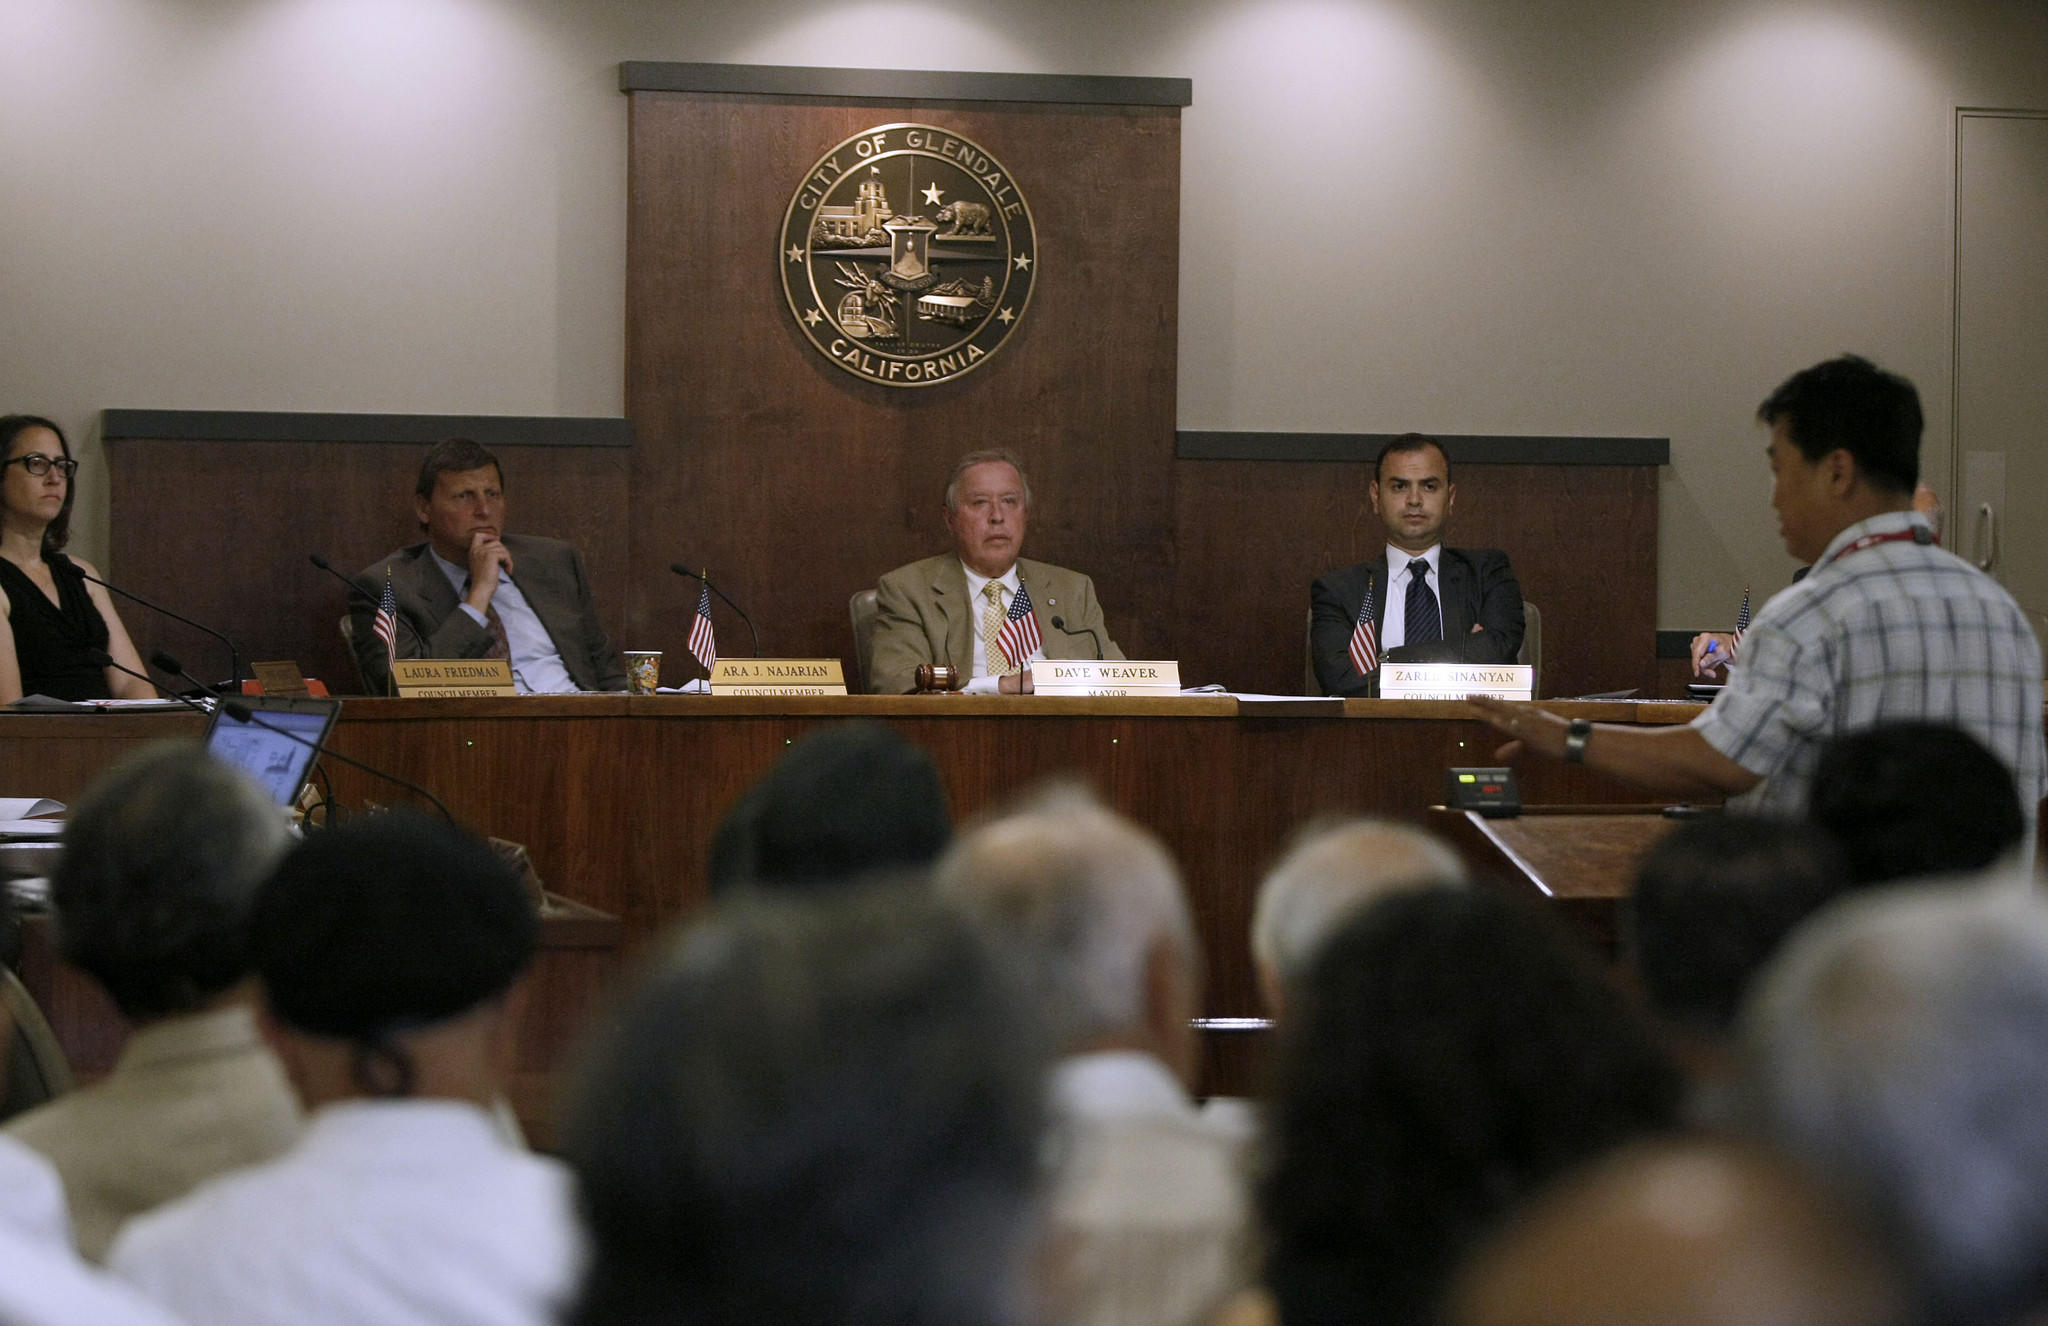 A member of the public motions as he speaks on the topic of the comfort-women statue to the Glendale City Council at Glendale City Hall on Tuesday, July 9; 2013.